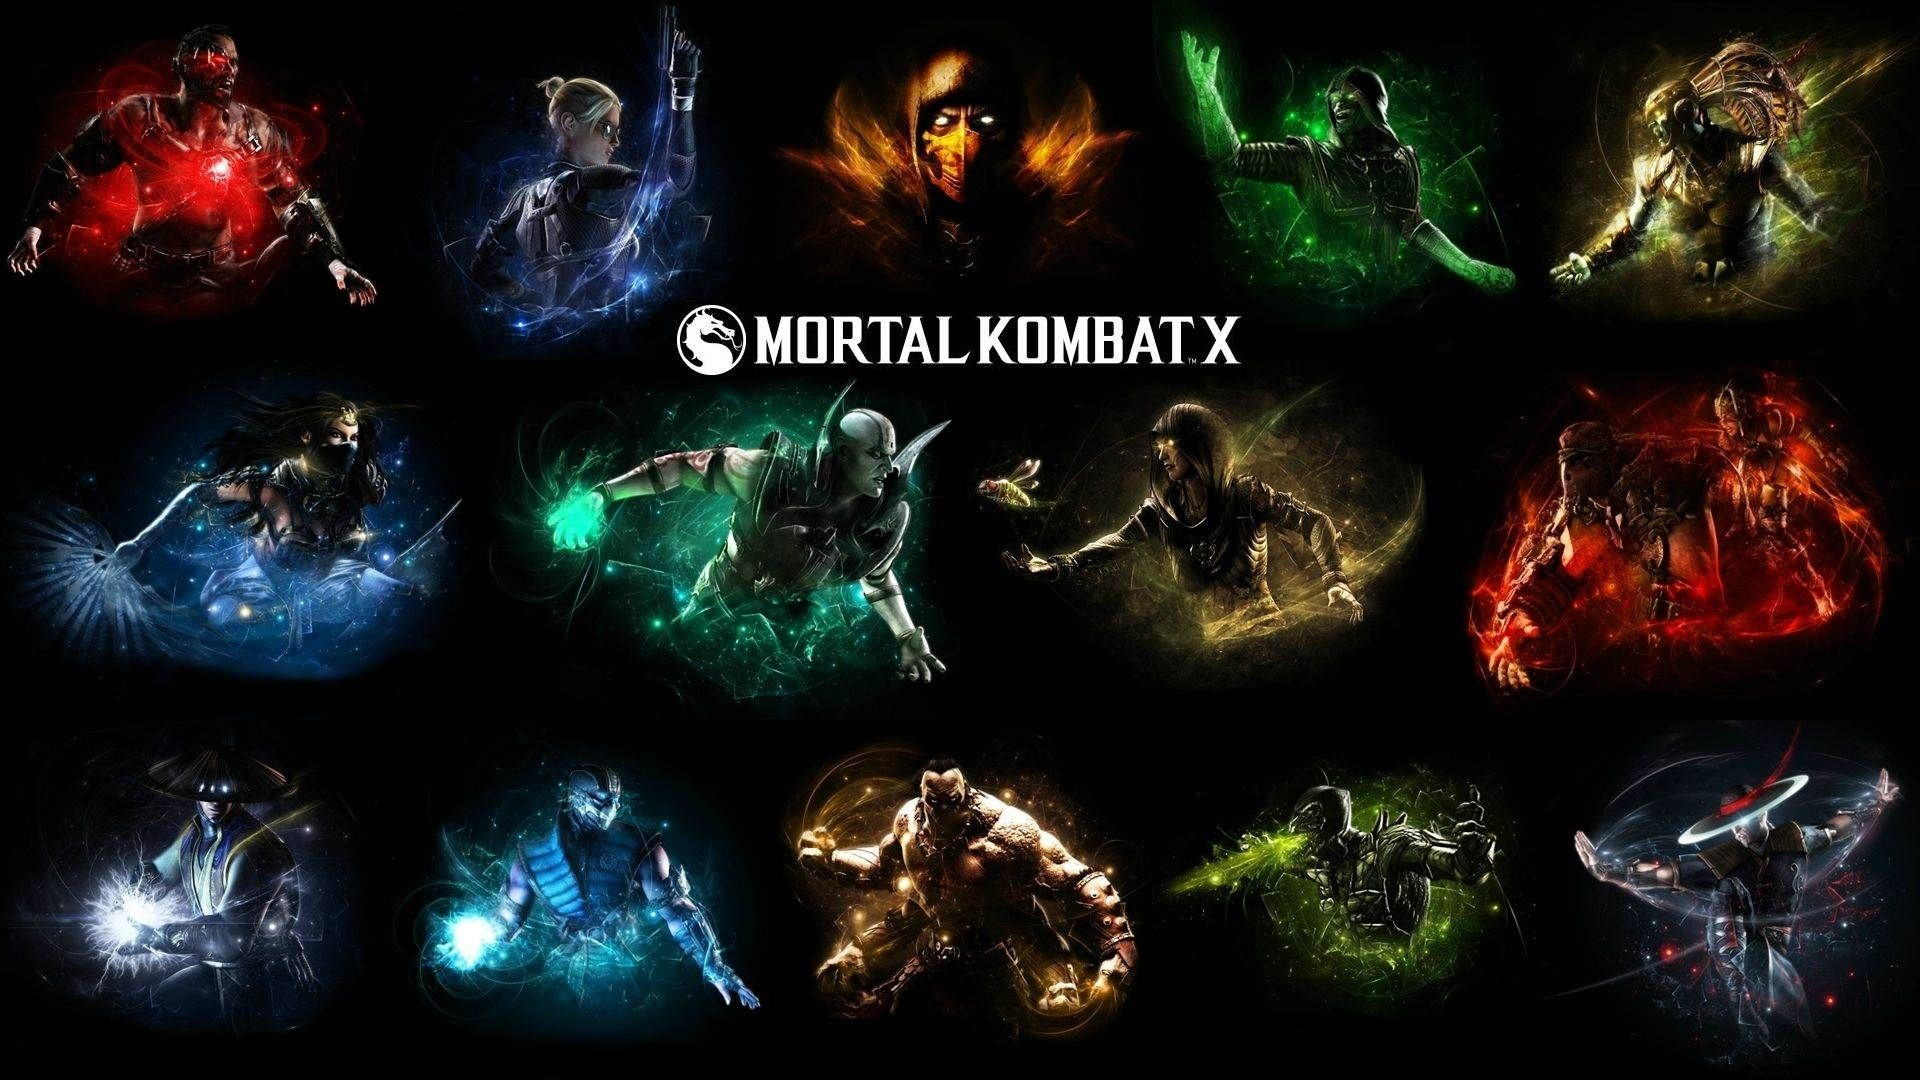 Mortal Kombat HD Wallpapers (85+ background pictures)